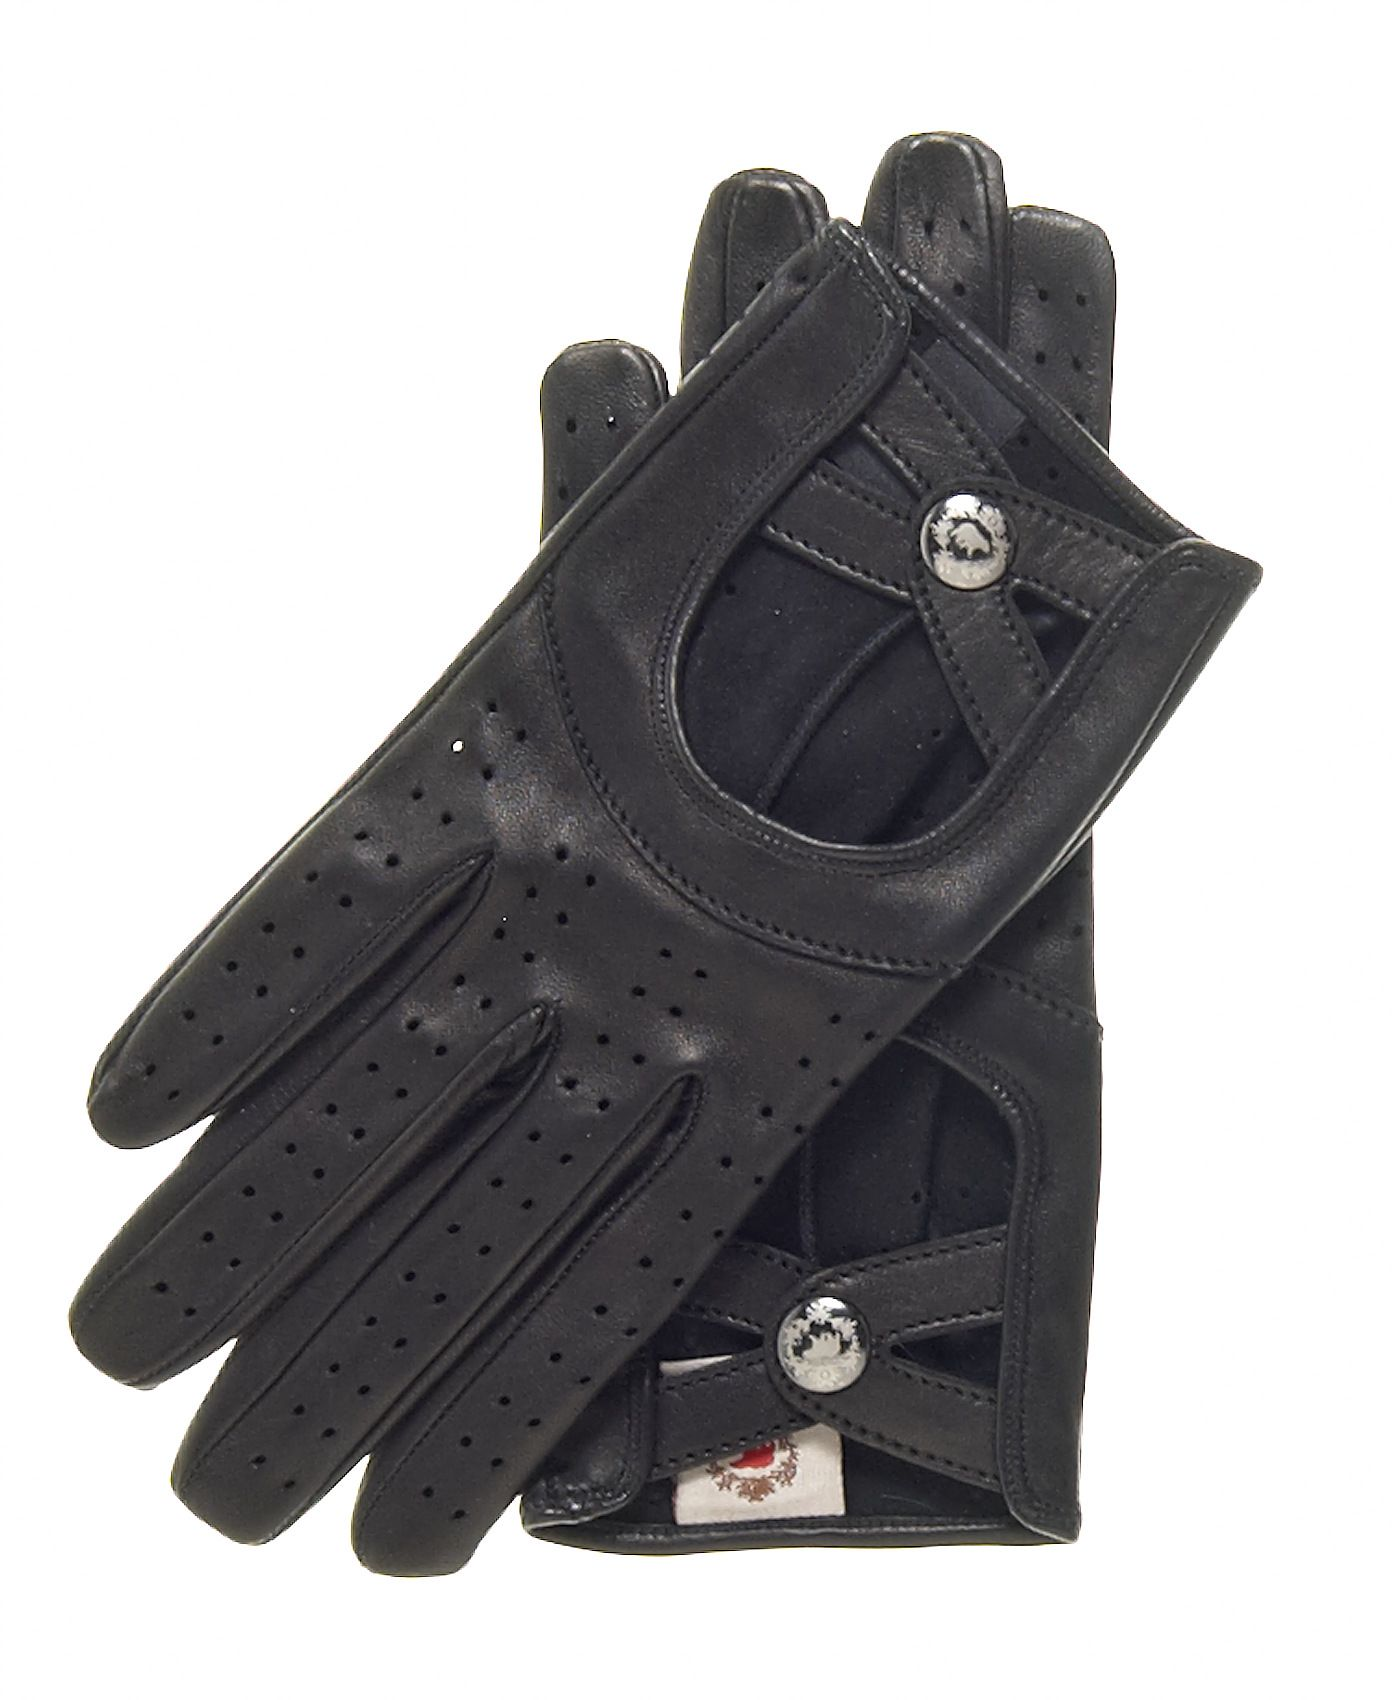 Buy ladies leather gloves online - Women S Italian Leather Driving Gloves By Fratelli Orsini Free Usa Shipping At Leather Gloves Online